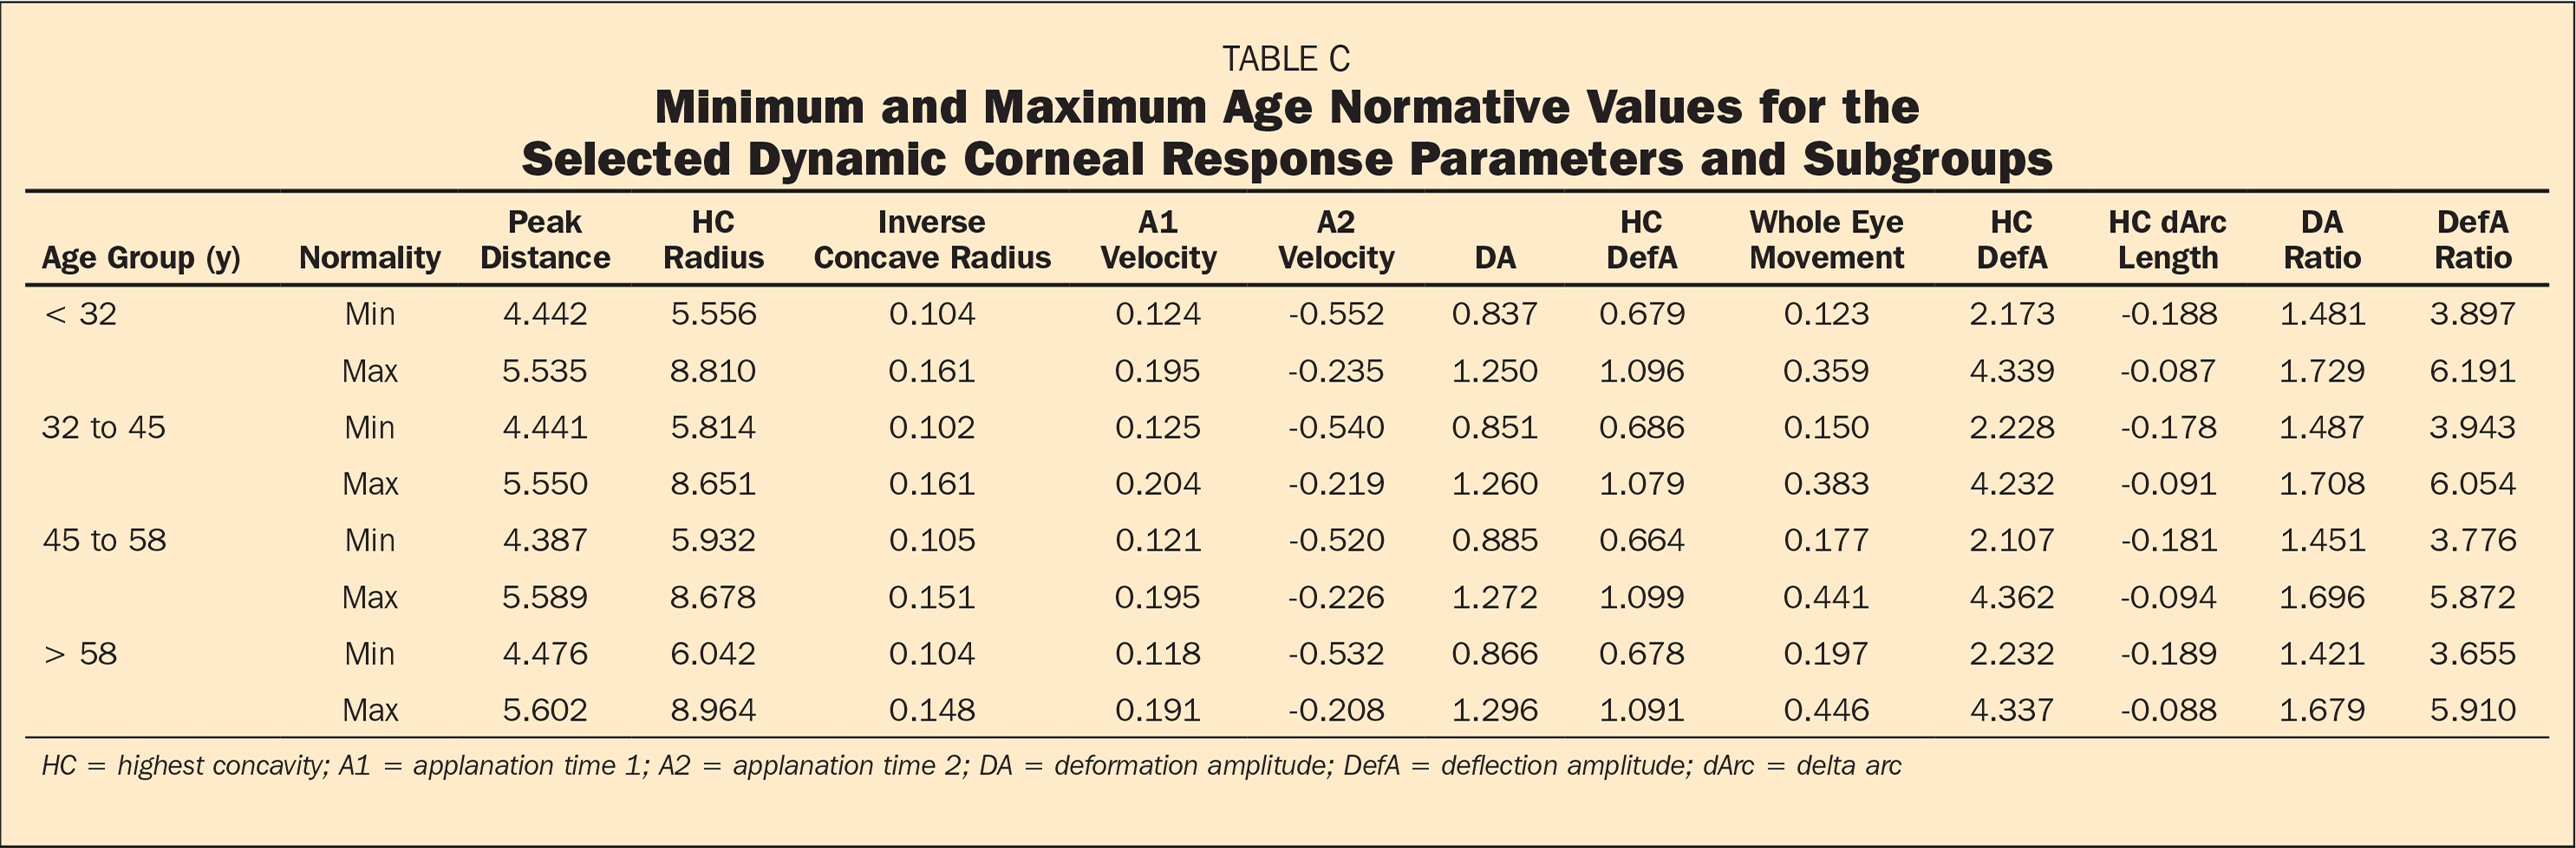 �A;Minimum and Maximum Age Normative Values for the Selected Dynamic Corneal Response Parameters and Subgroups